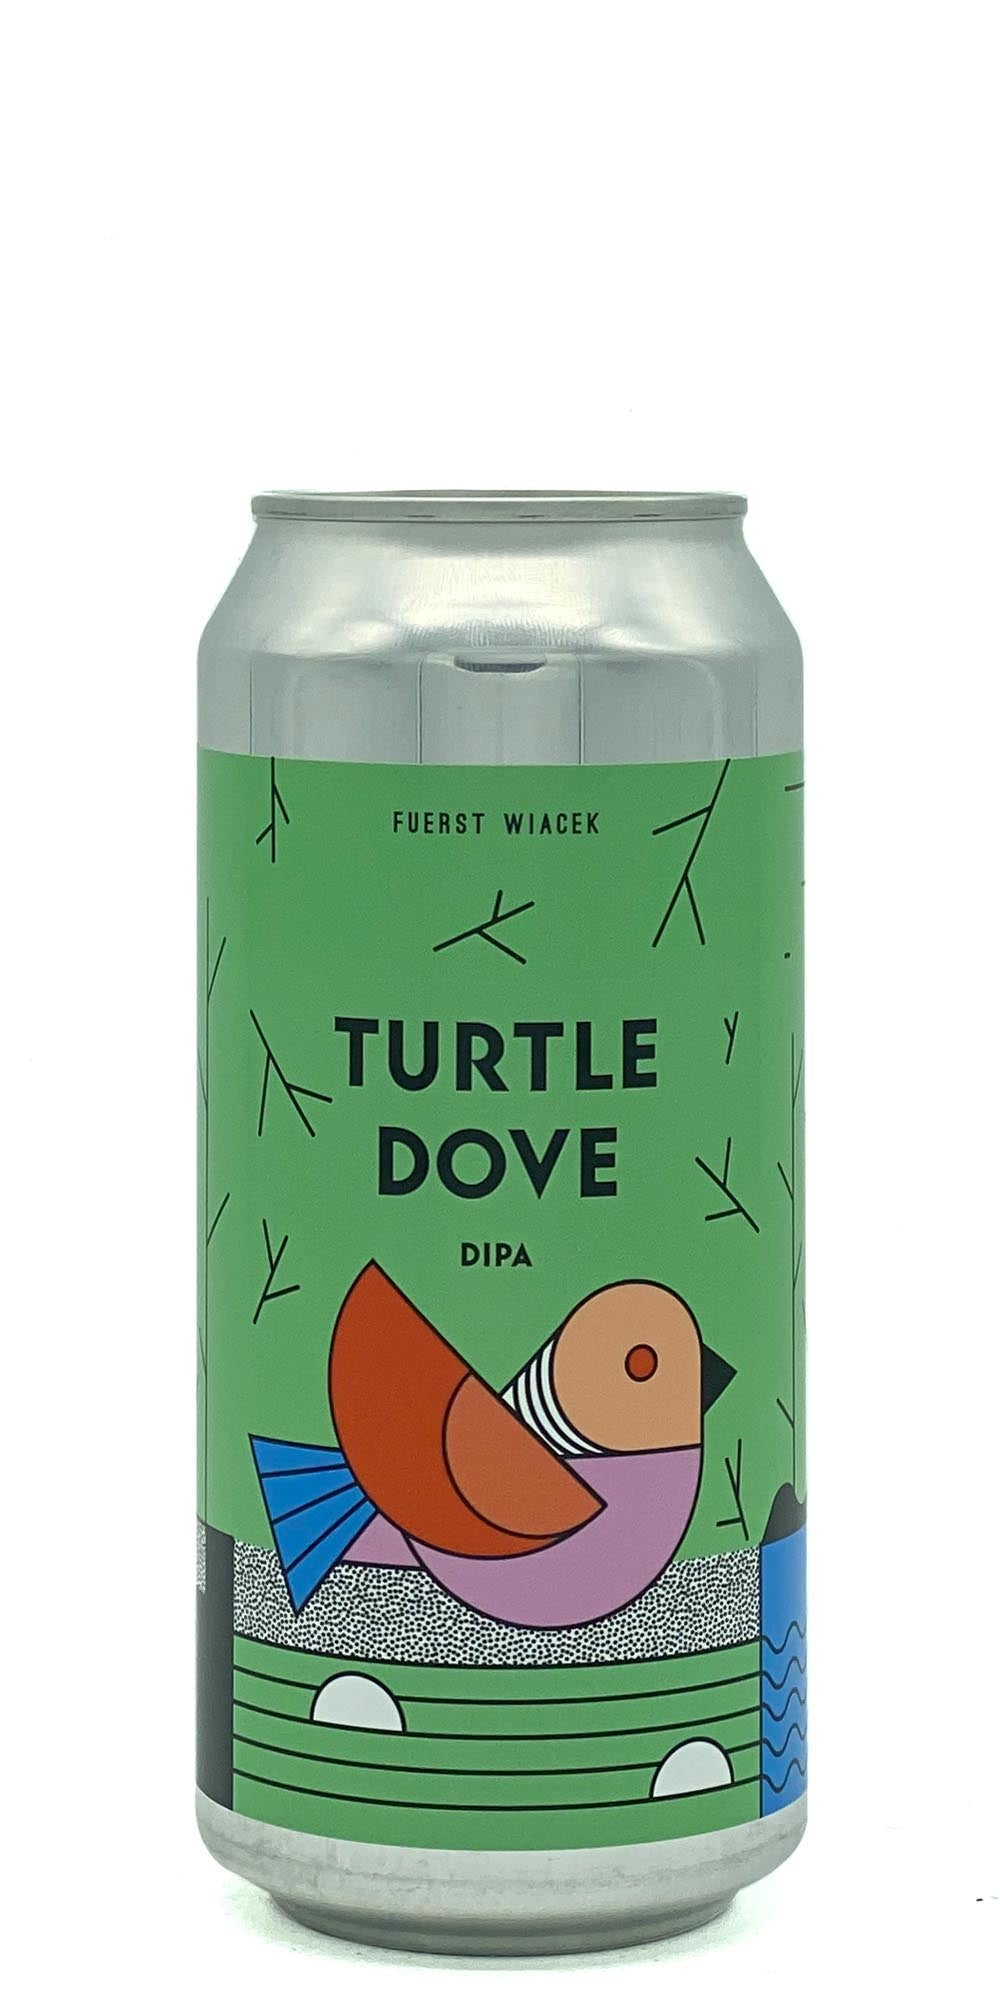 Fuerst Wiacek - Turtledove - Drikbeer - Order Craft Beer Online